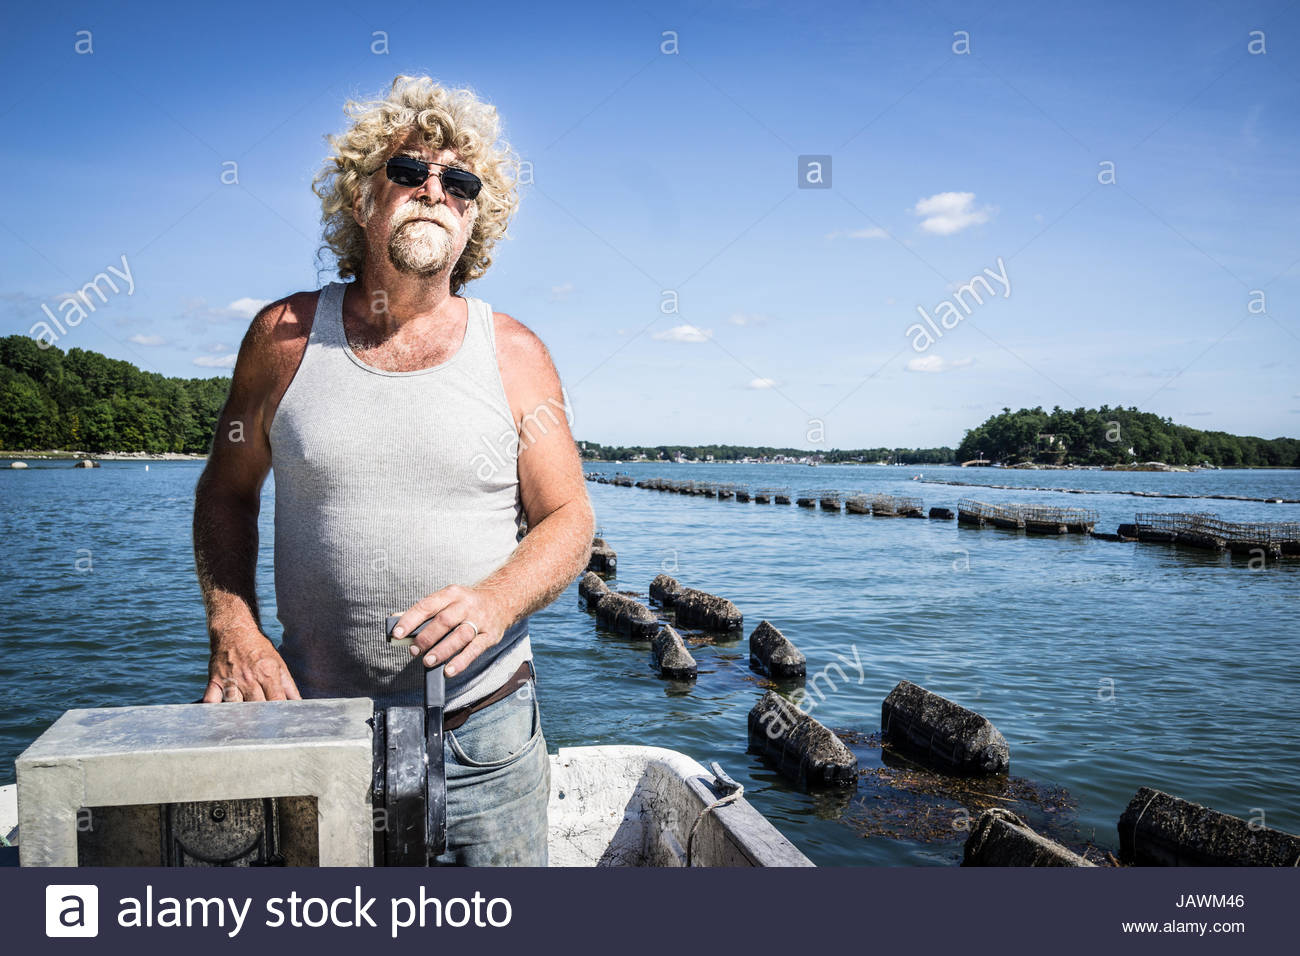 An oyster fisherman drives a boat down the river along his oyster beds. Stock Photo